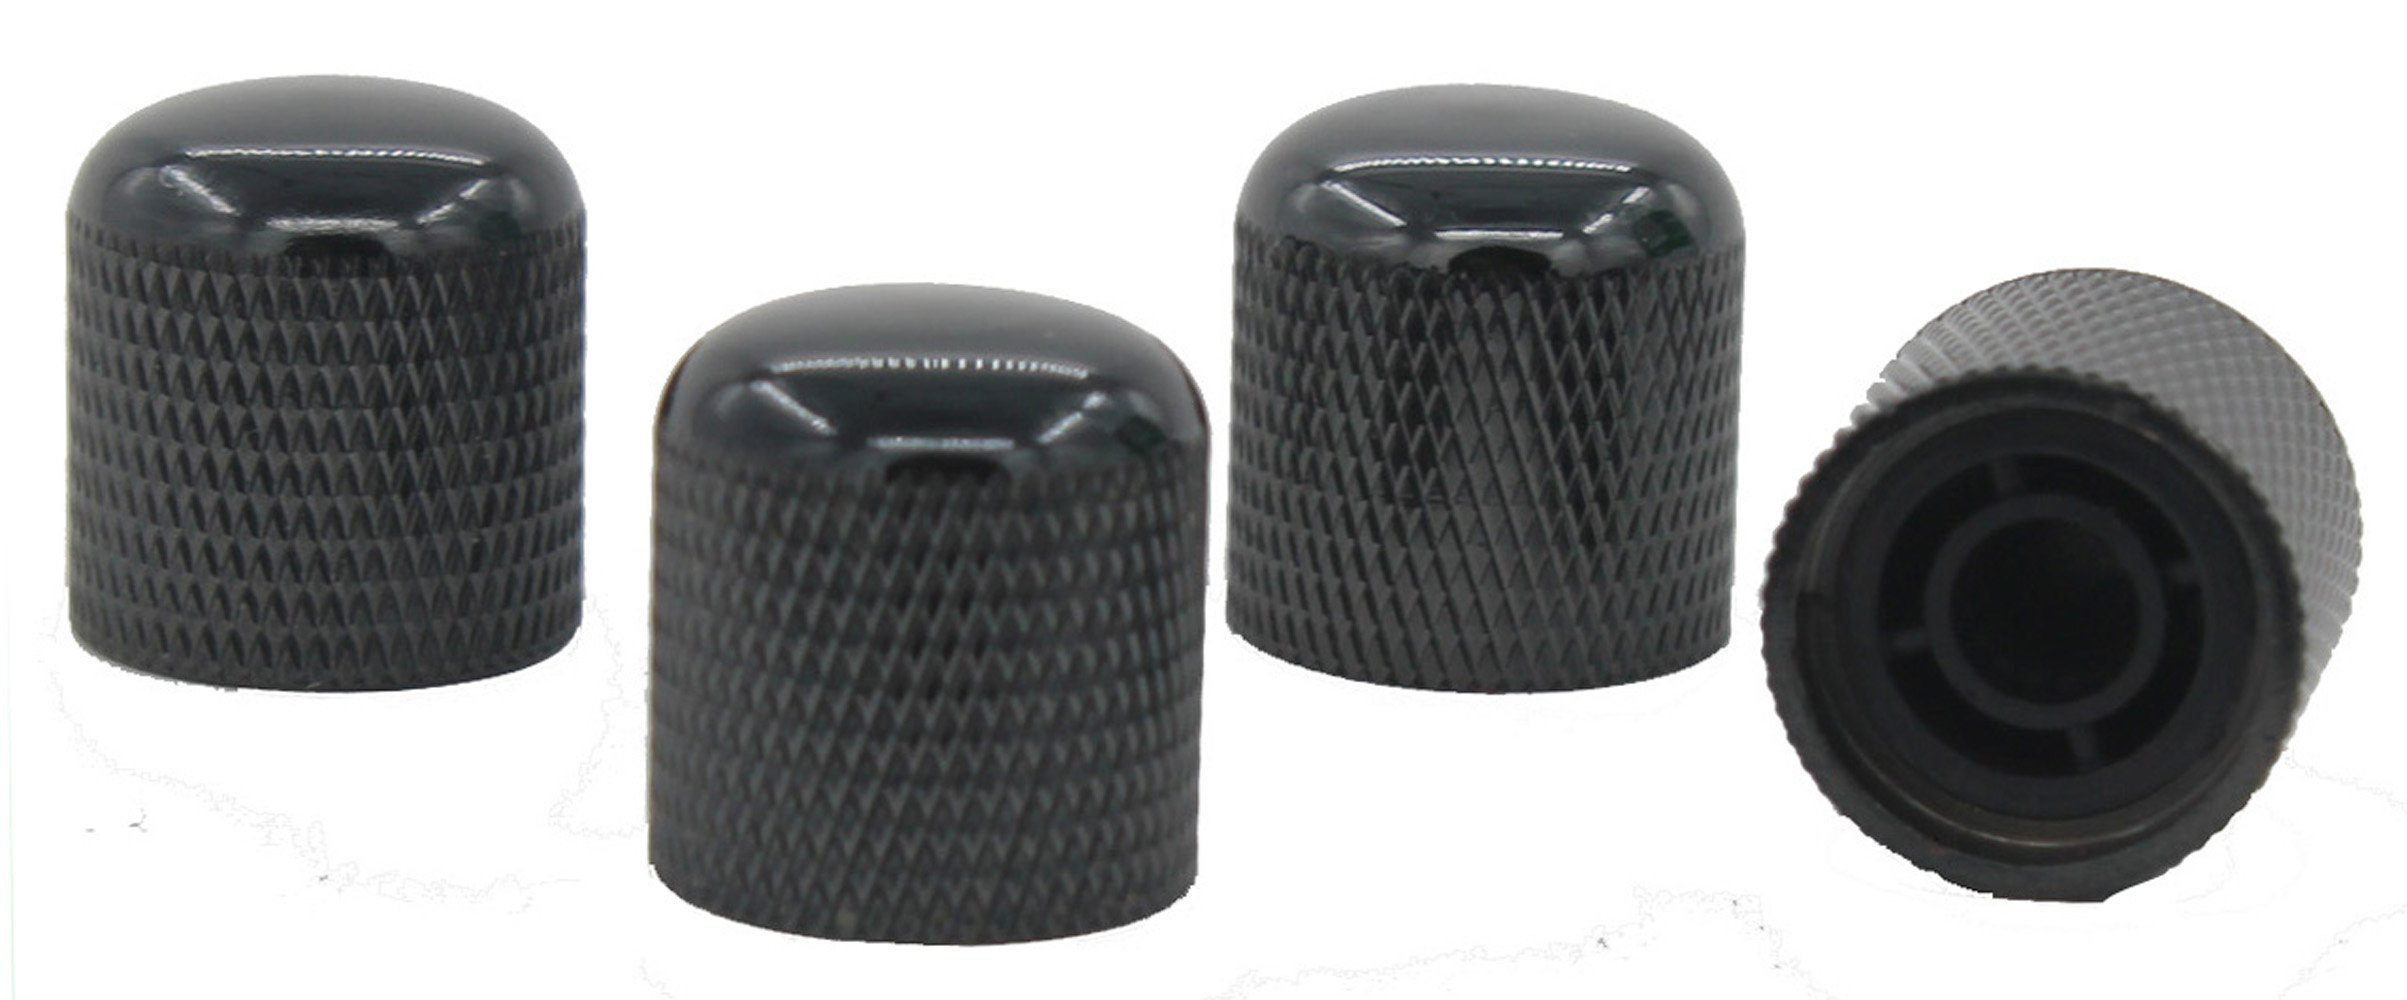 Heavy black Dome Control Knobs for Electric Guitar or Bass 4pcs